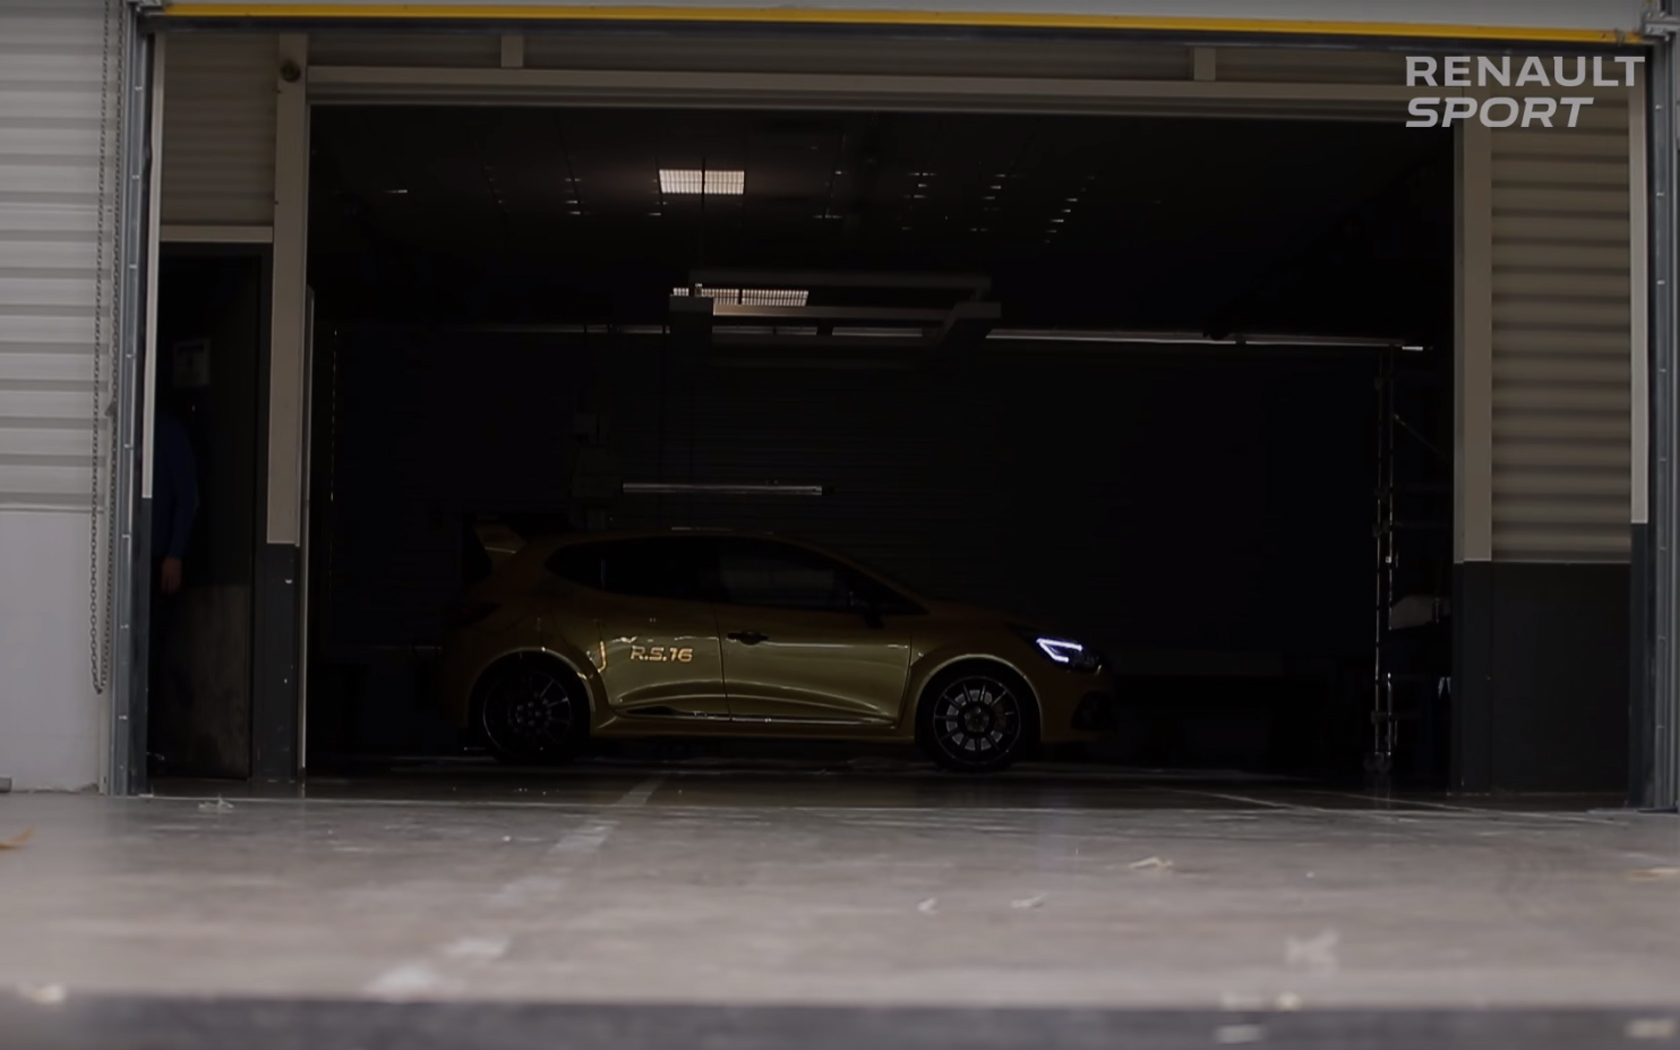 Renault Clio R.S.16 - garage - side-face / profil - dark-light